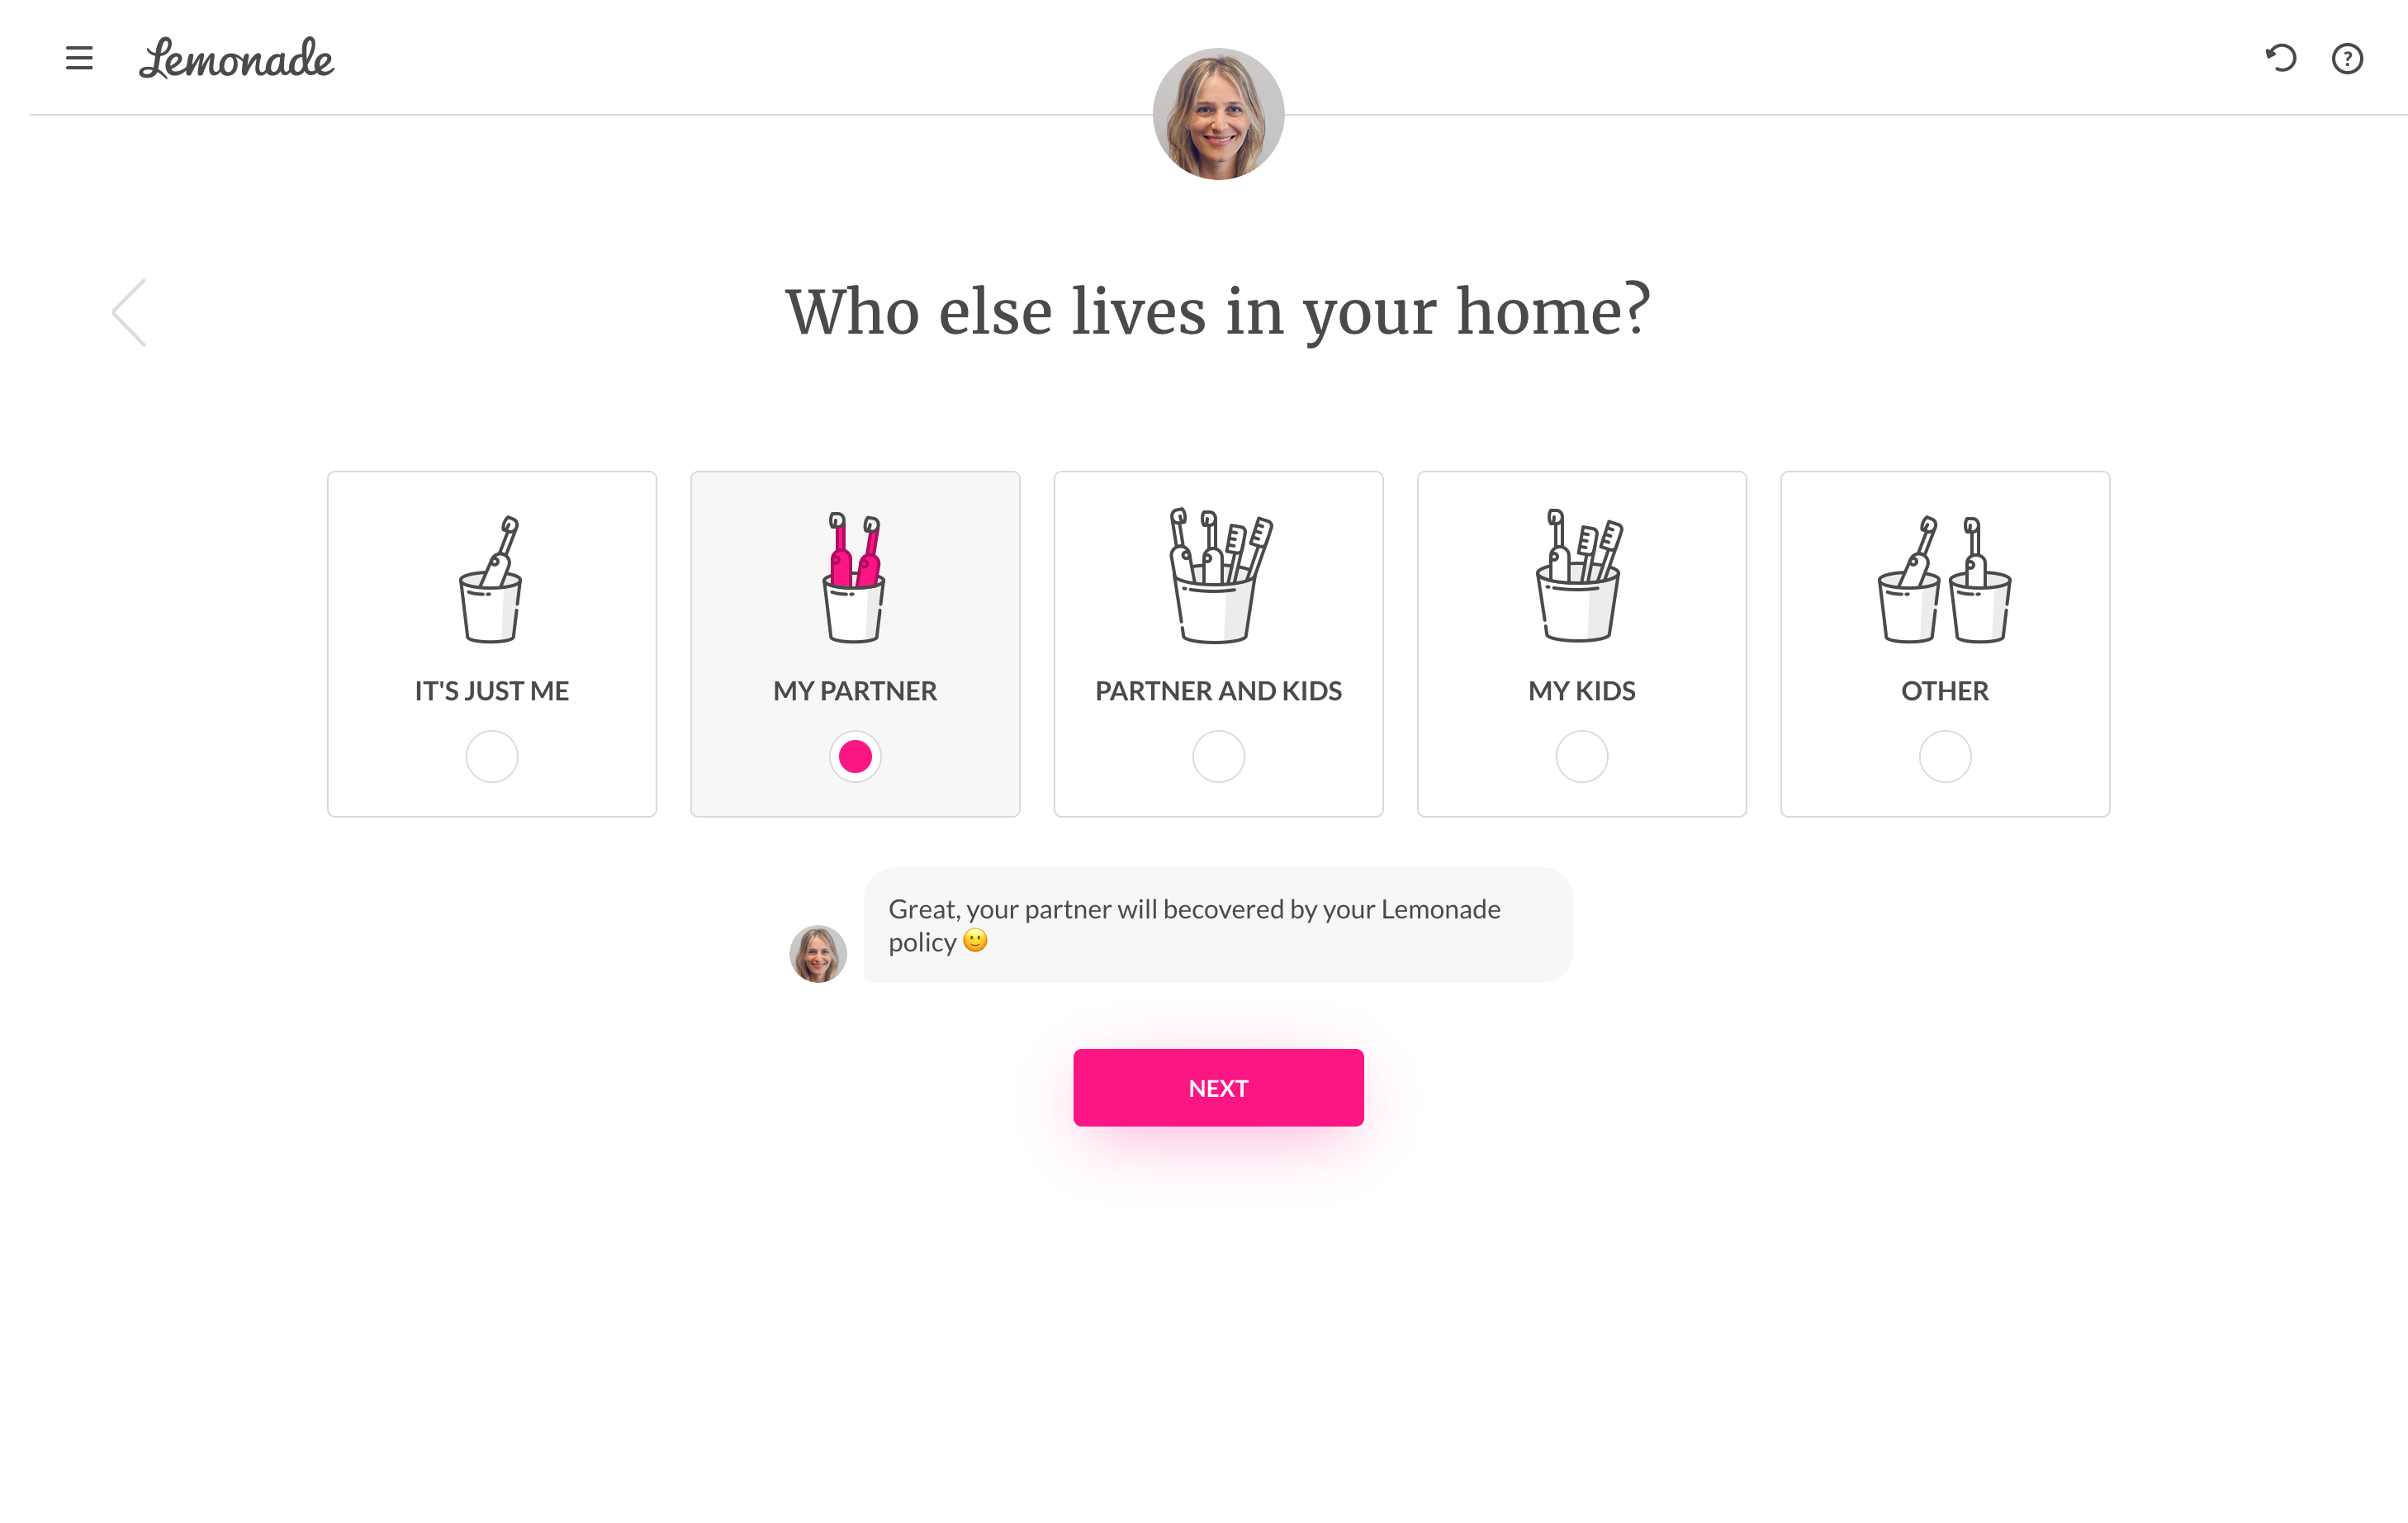 Insurance company Lemonade uses toothbrushes to represent users and their families during sign-up.